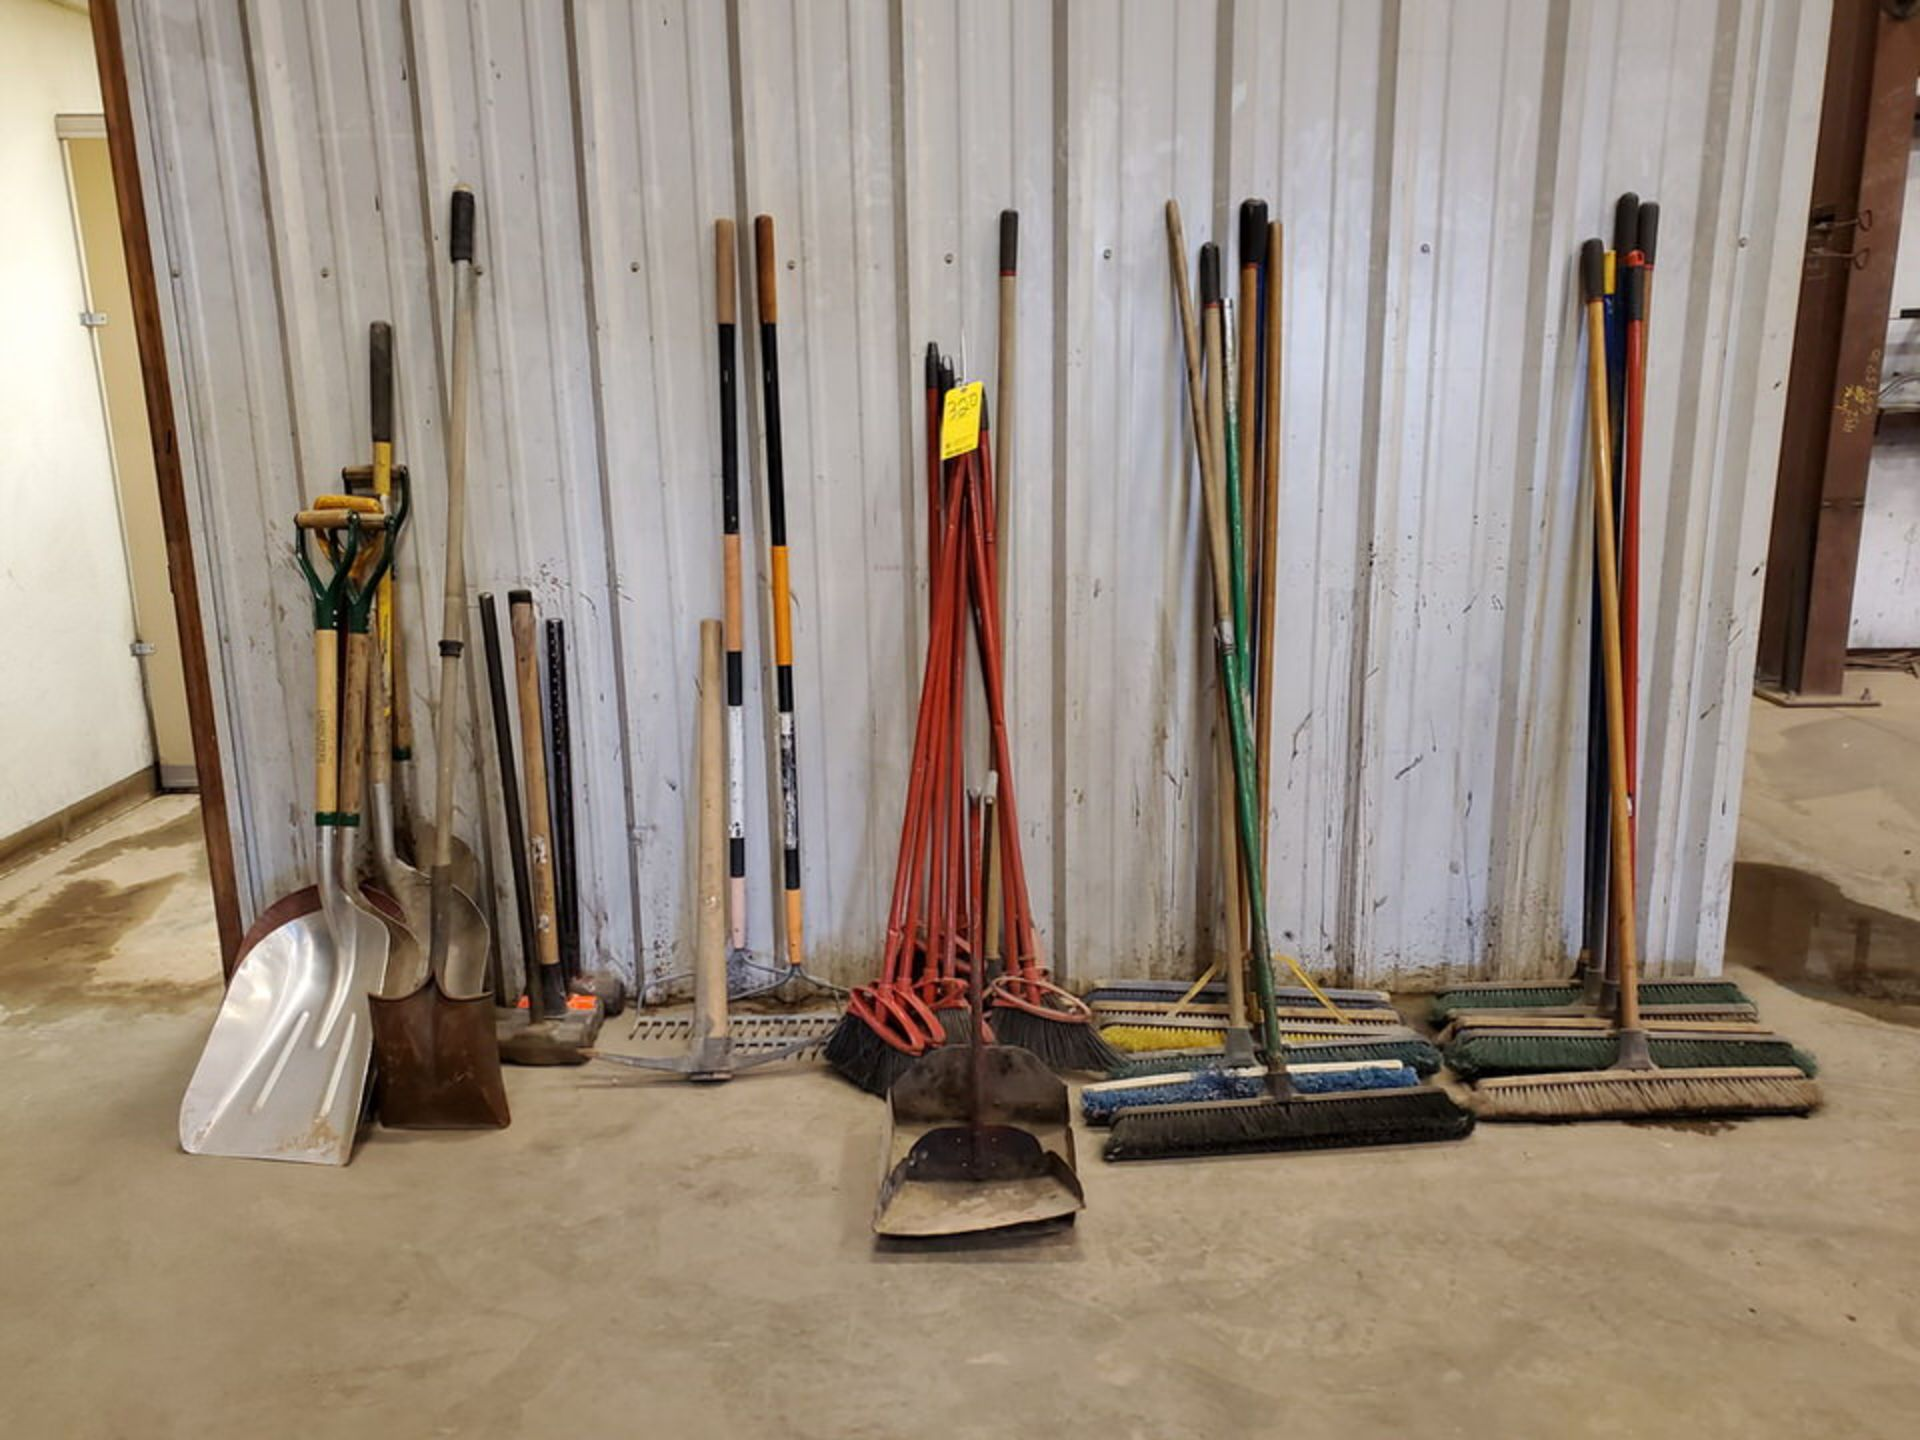 Assorted Cleaning & Yard Matl To Include But Not Limited To: Brooms, Shovels, Rakes, Dust Pans,